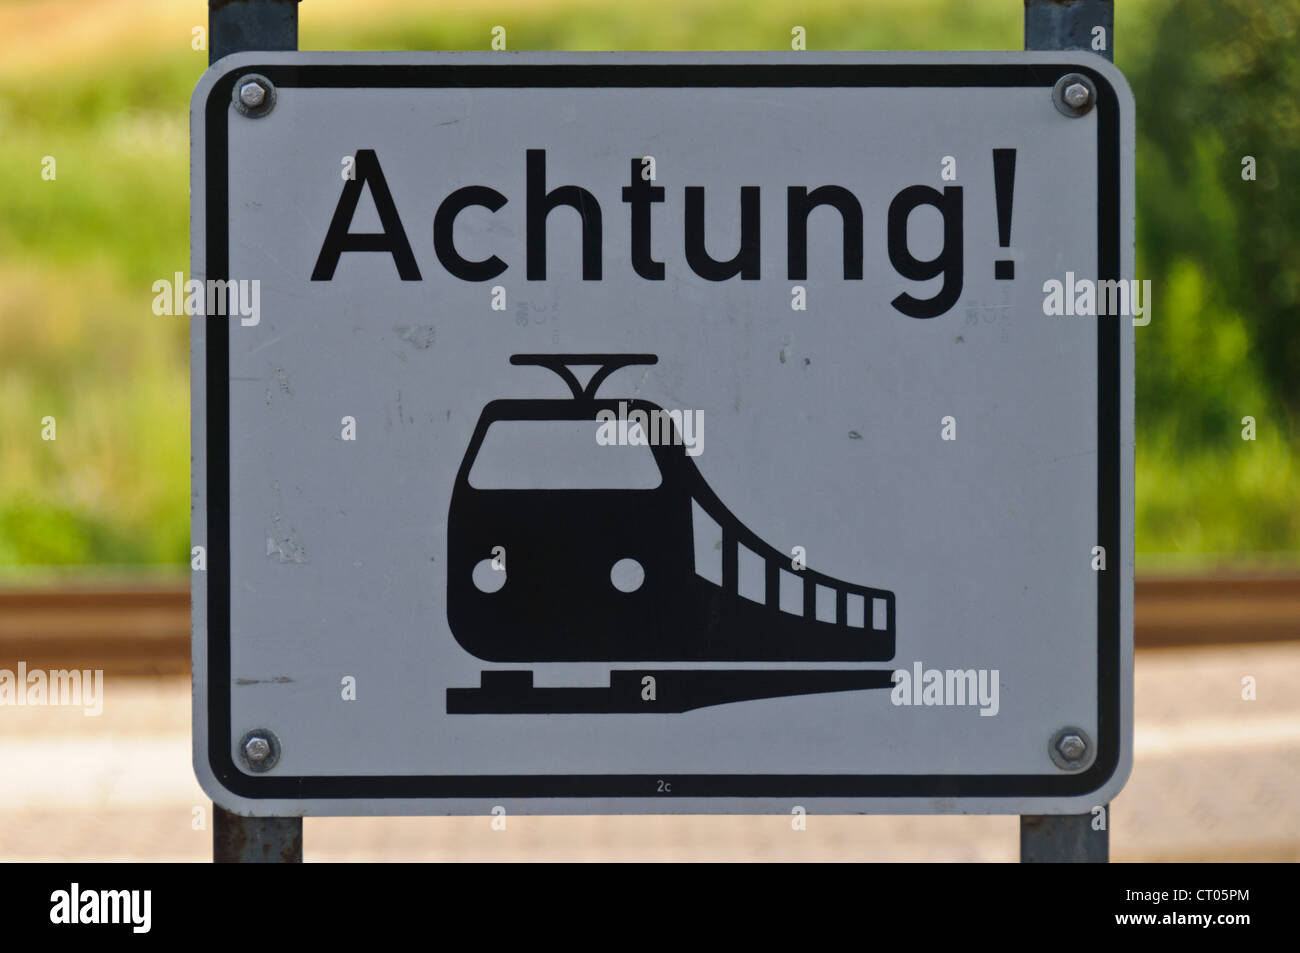 German Railroad Level Crossing Warning Sign 'Achtung' Attention - Stock Image